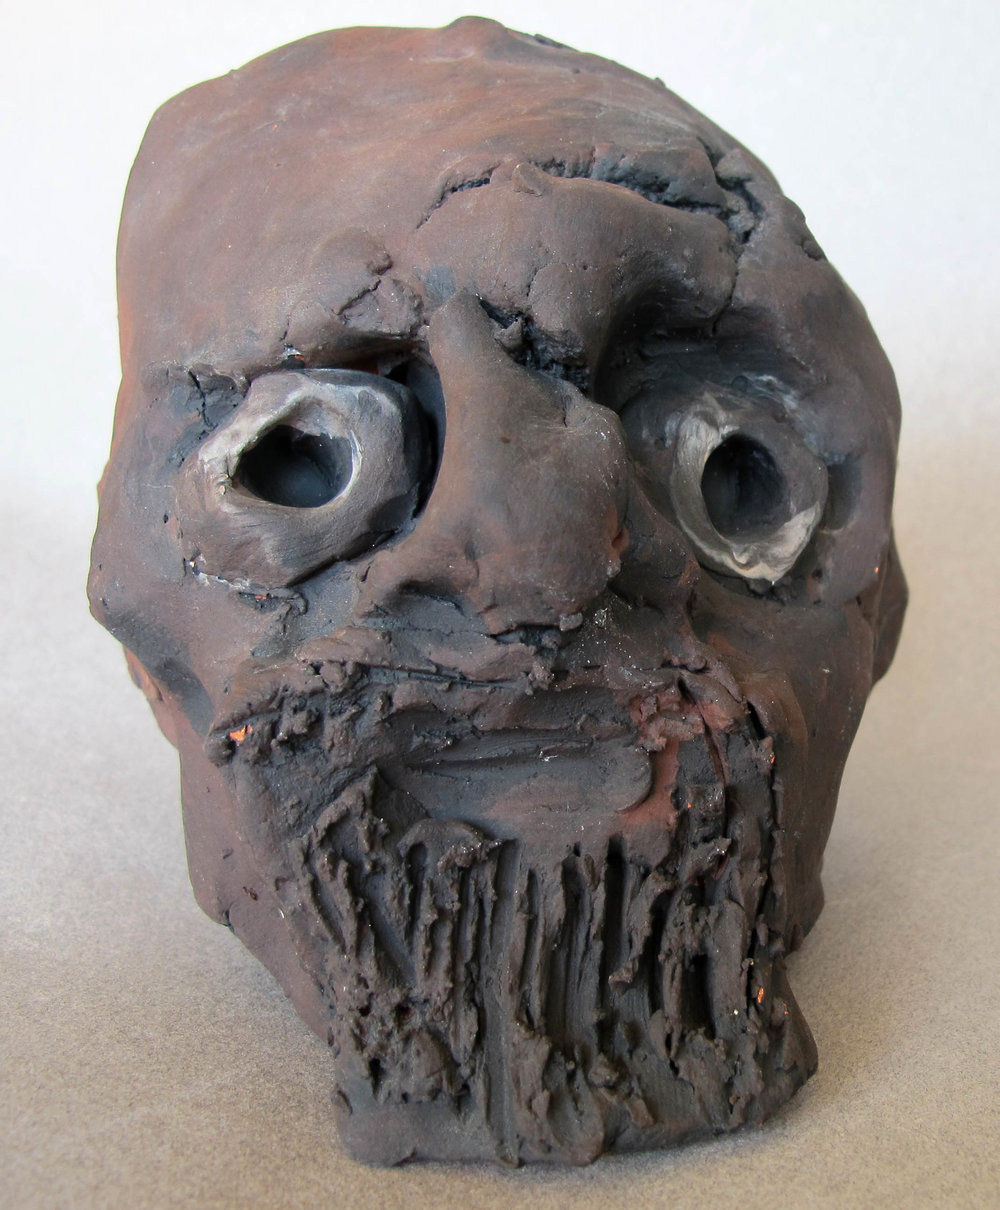 OLD MAN, FRONT VIEW